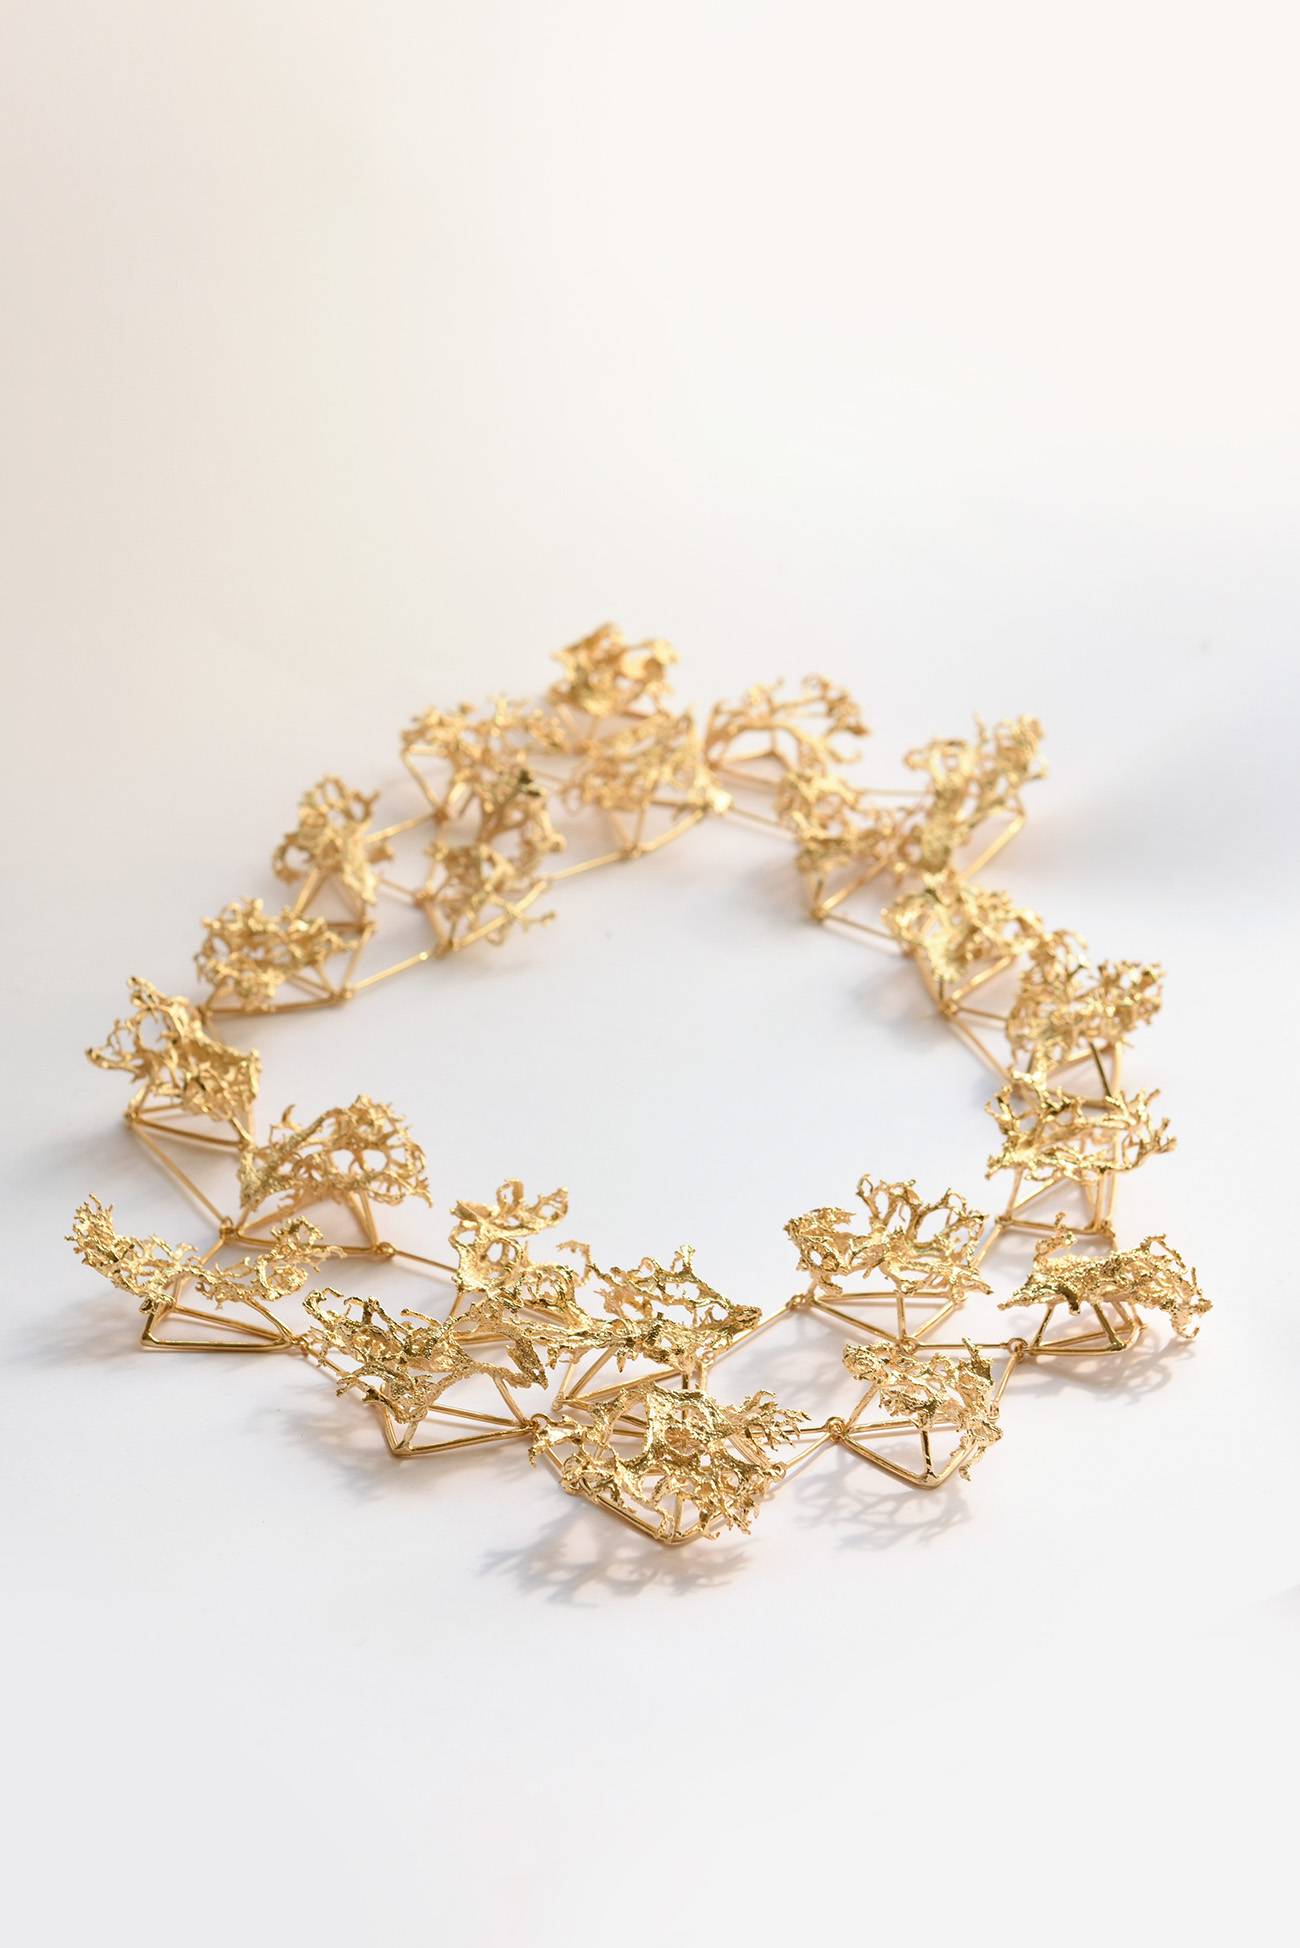 On the same wavelength, gold plated brass necklace